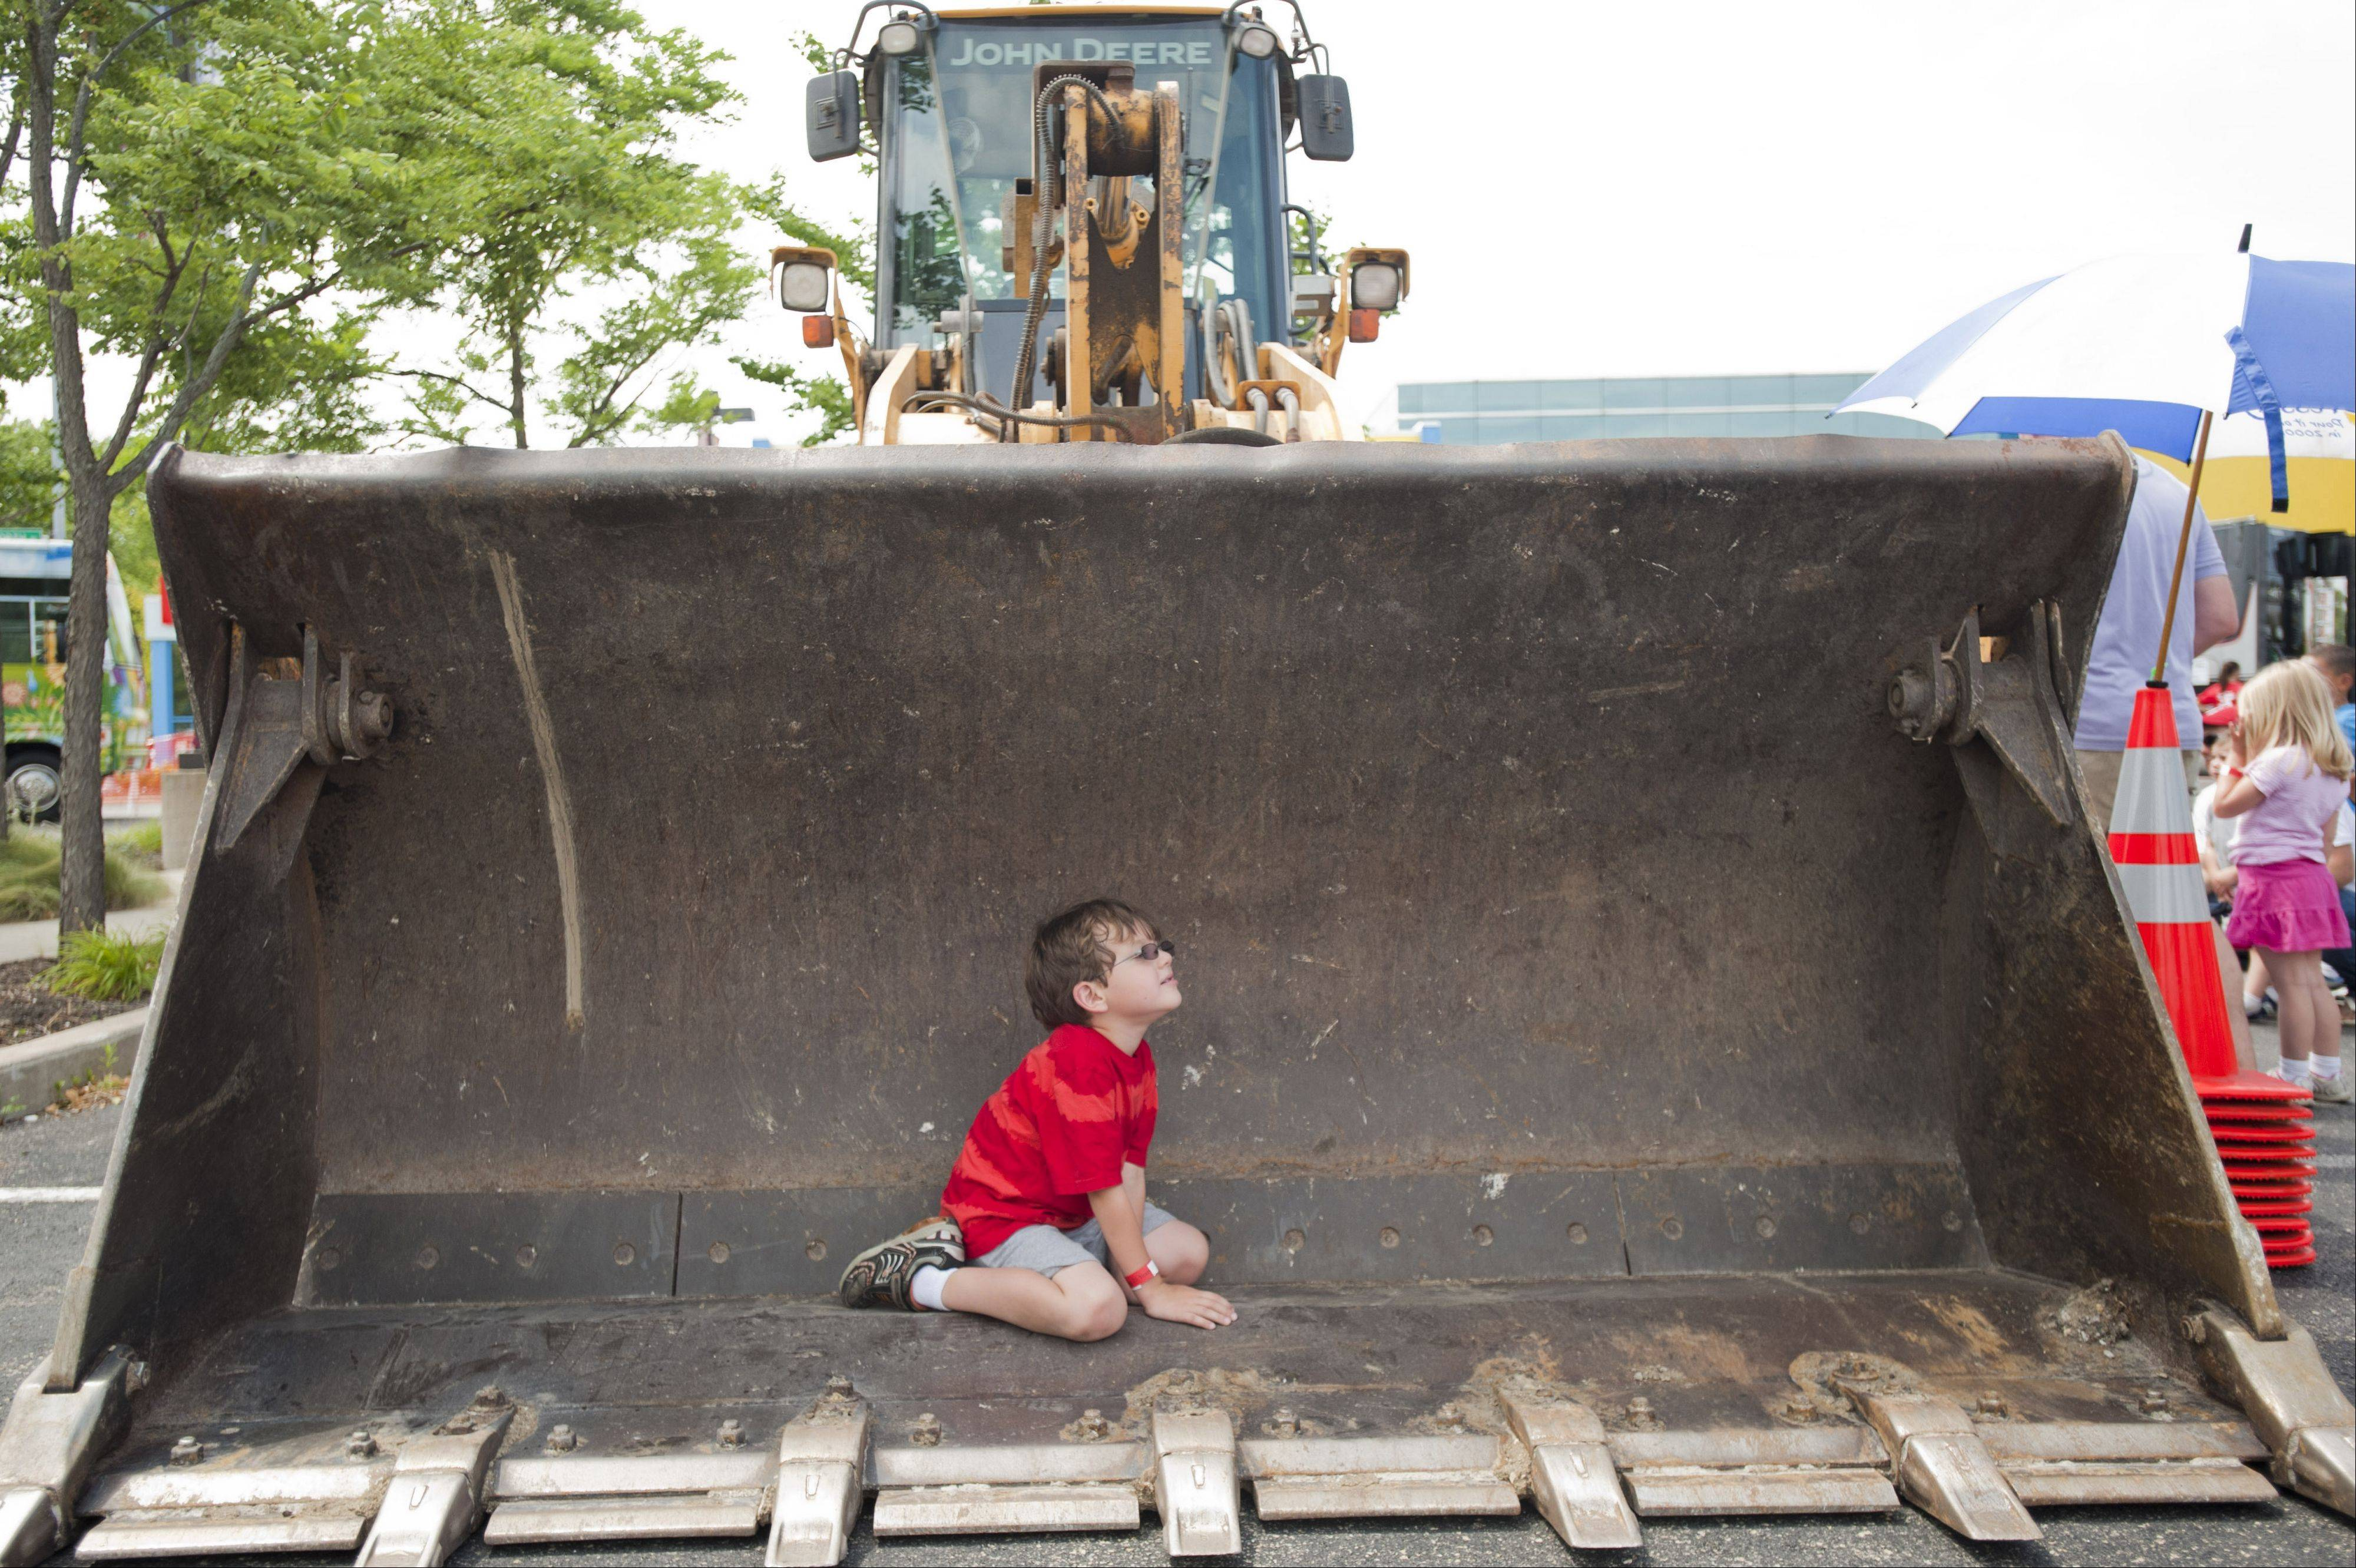 Malcolm Hoering, 6, gets a close look at various trucks while at the DuPage Children's Museum's 25th anniversary celebration on Sunday. The event featured an insect zoo, train rides and art activities.